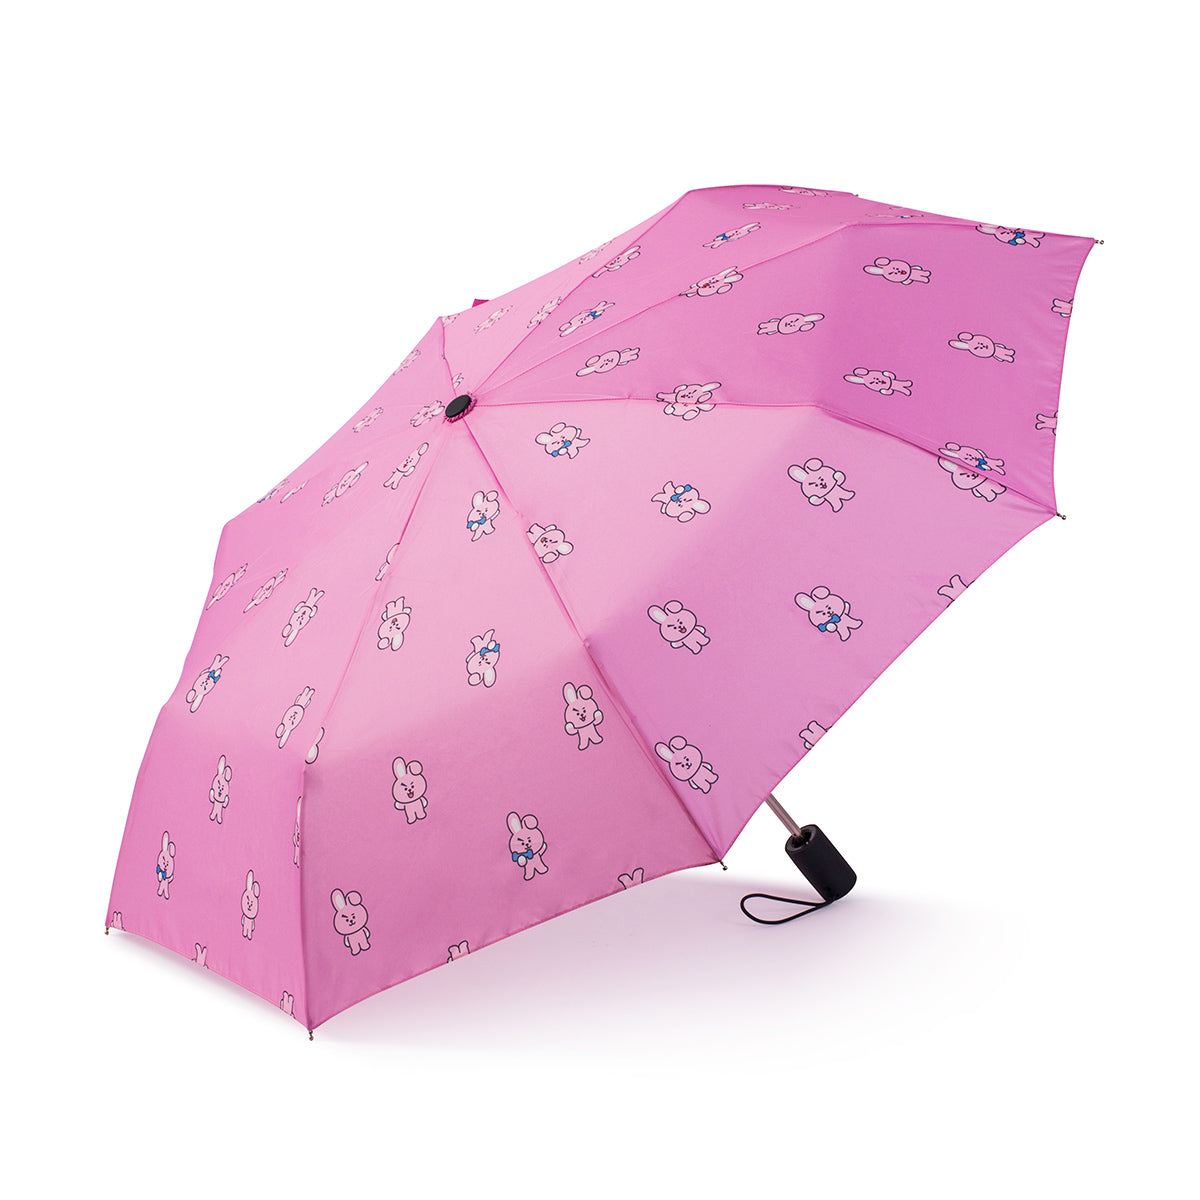 BT21 COOKY Auto Umbrella